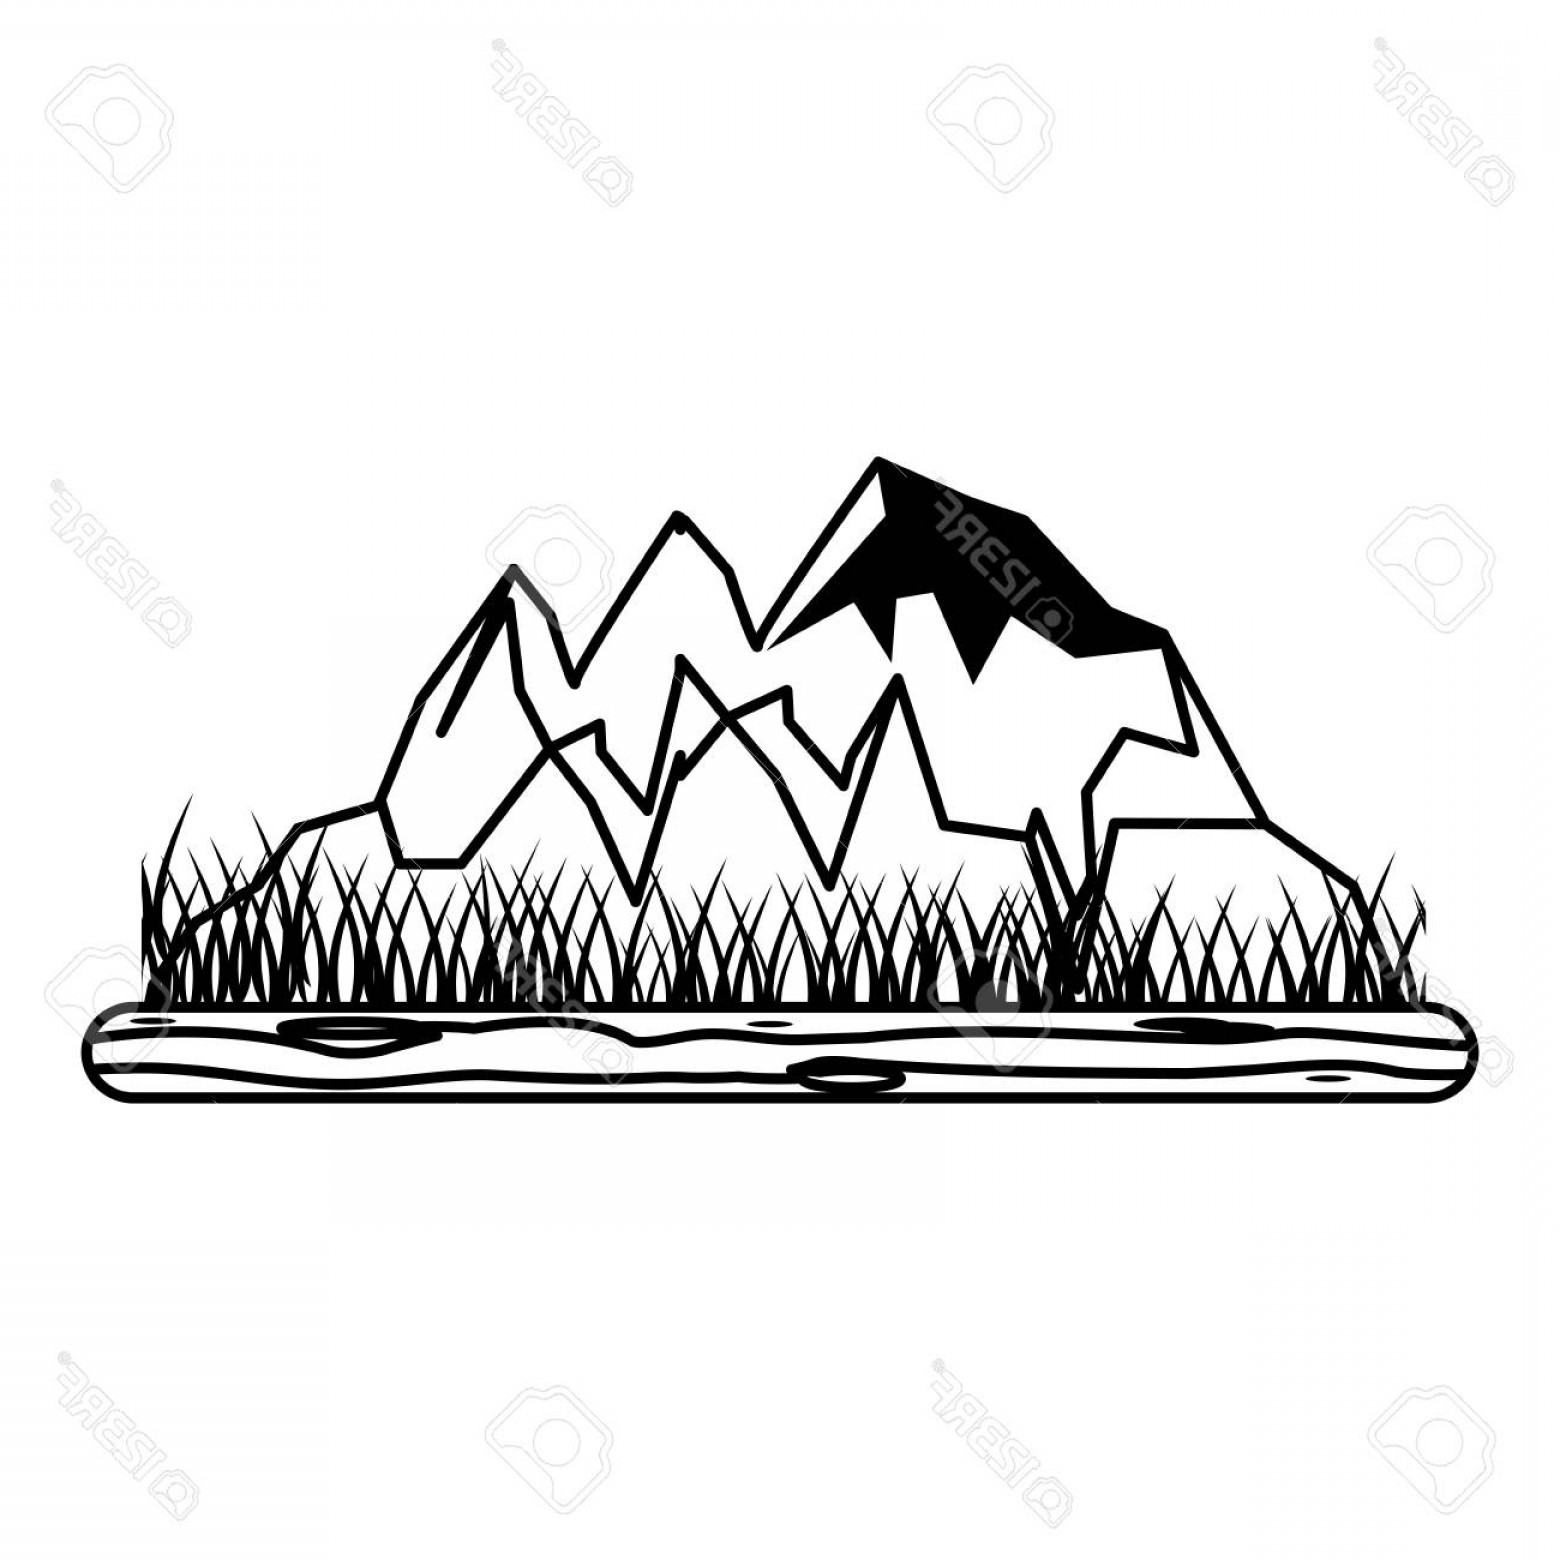 Rocky Mountain Line Art Vector: Photostock Vector Rocky Mountain With Snow And Grass Icon Image Vector Illustration Design Black And White